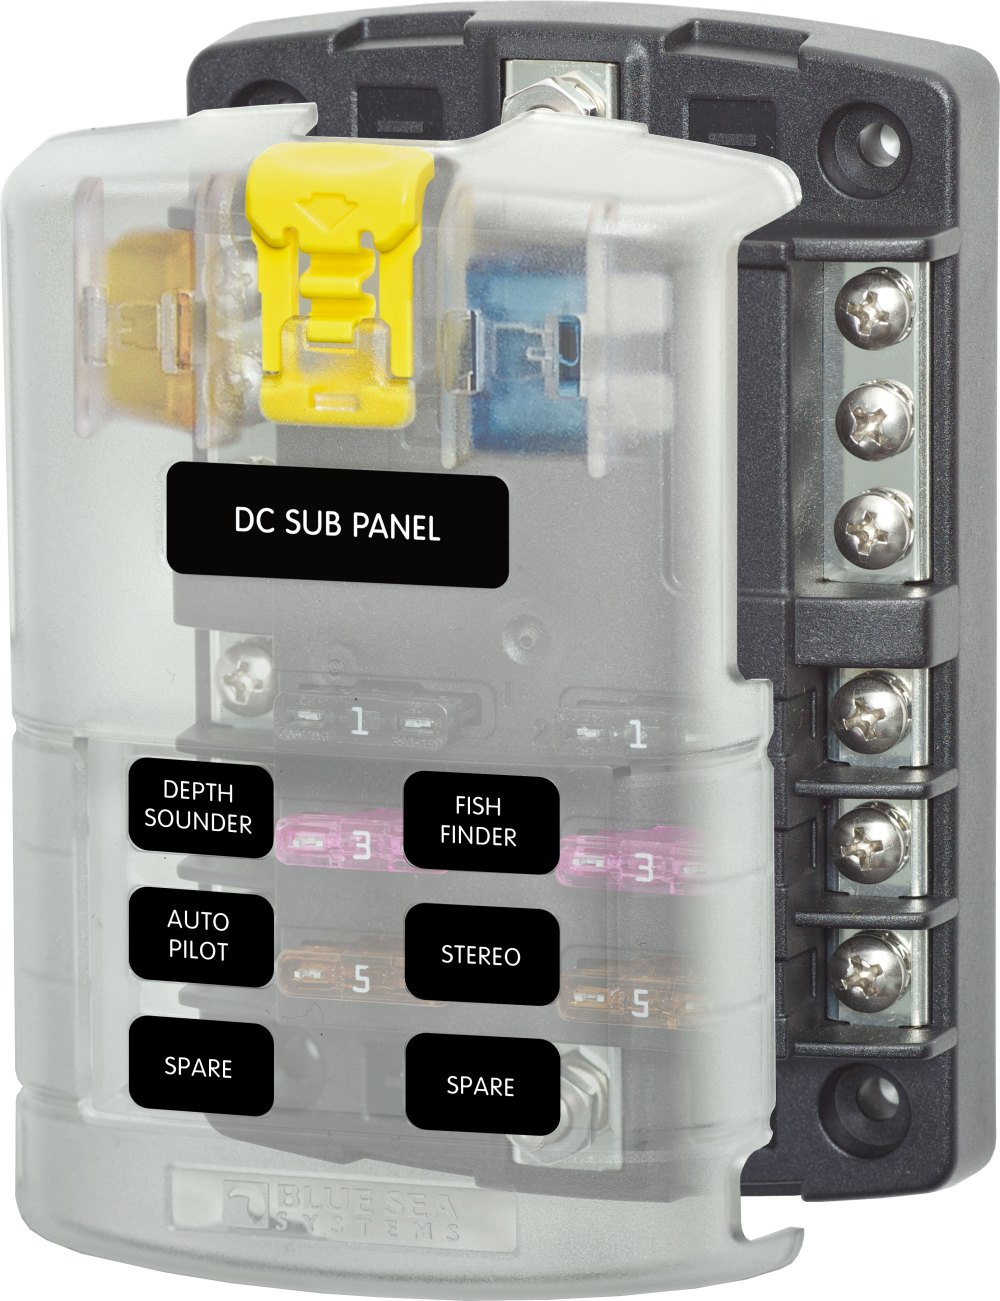 medium resolution of st blade fuse block 6 circuits with negative bus and cover blue boat fuse panel fuse box for small boat